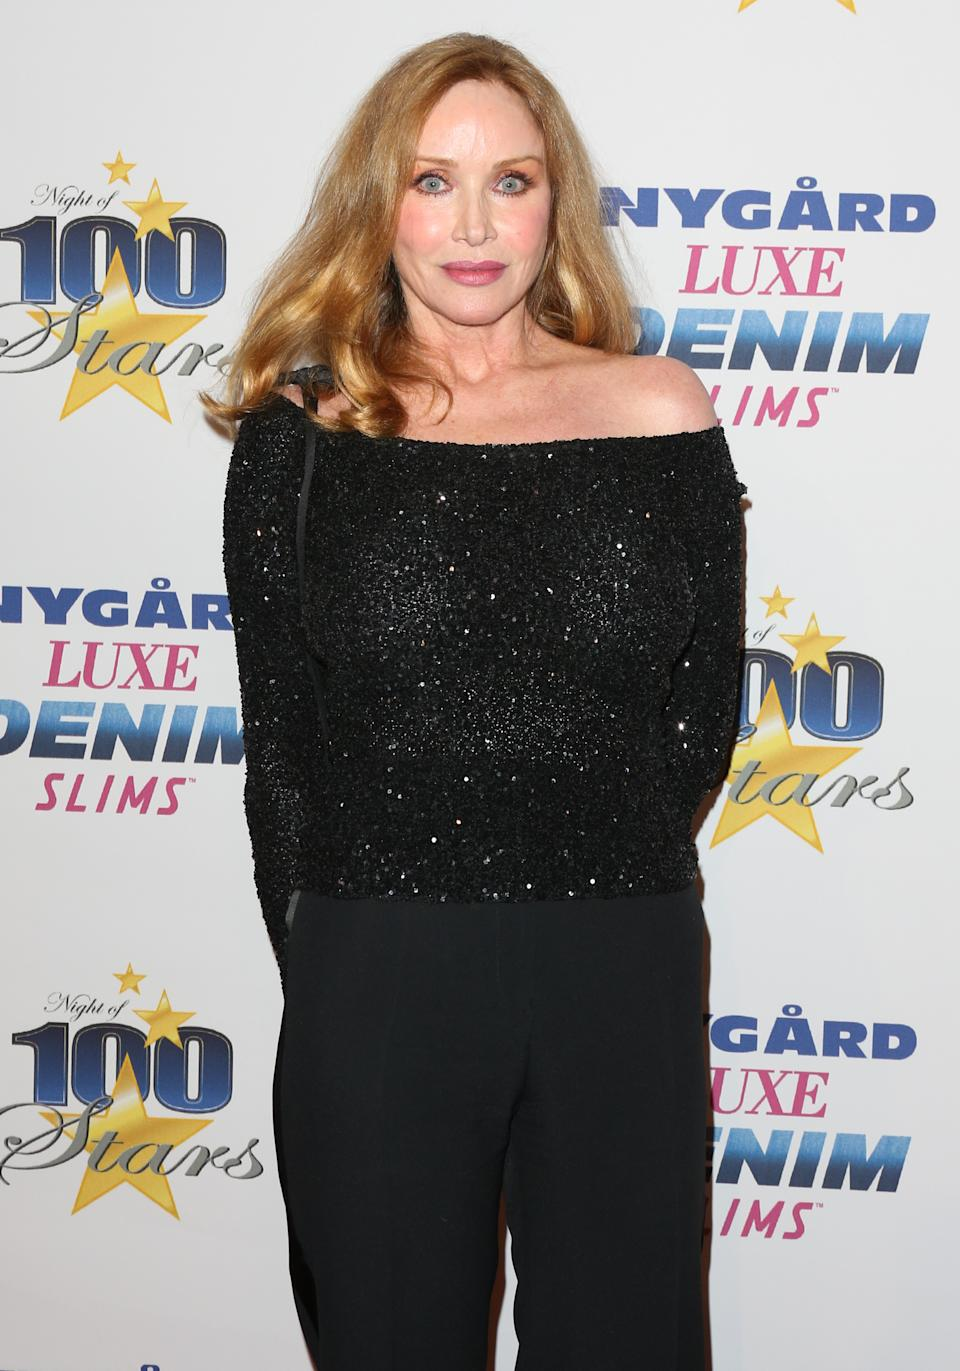 """Actress Tanya Roberts attends the 27th annual """"Night Of 100 Stars"""" black tie dinner viewing gala at The Villa Aurora on February 26, 2017 in Pacific Palisades, California."""